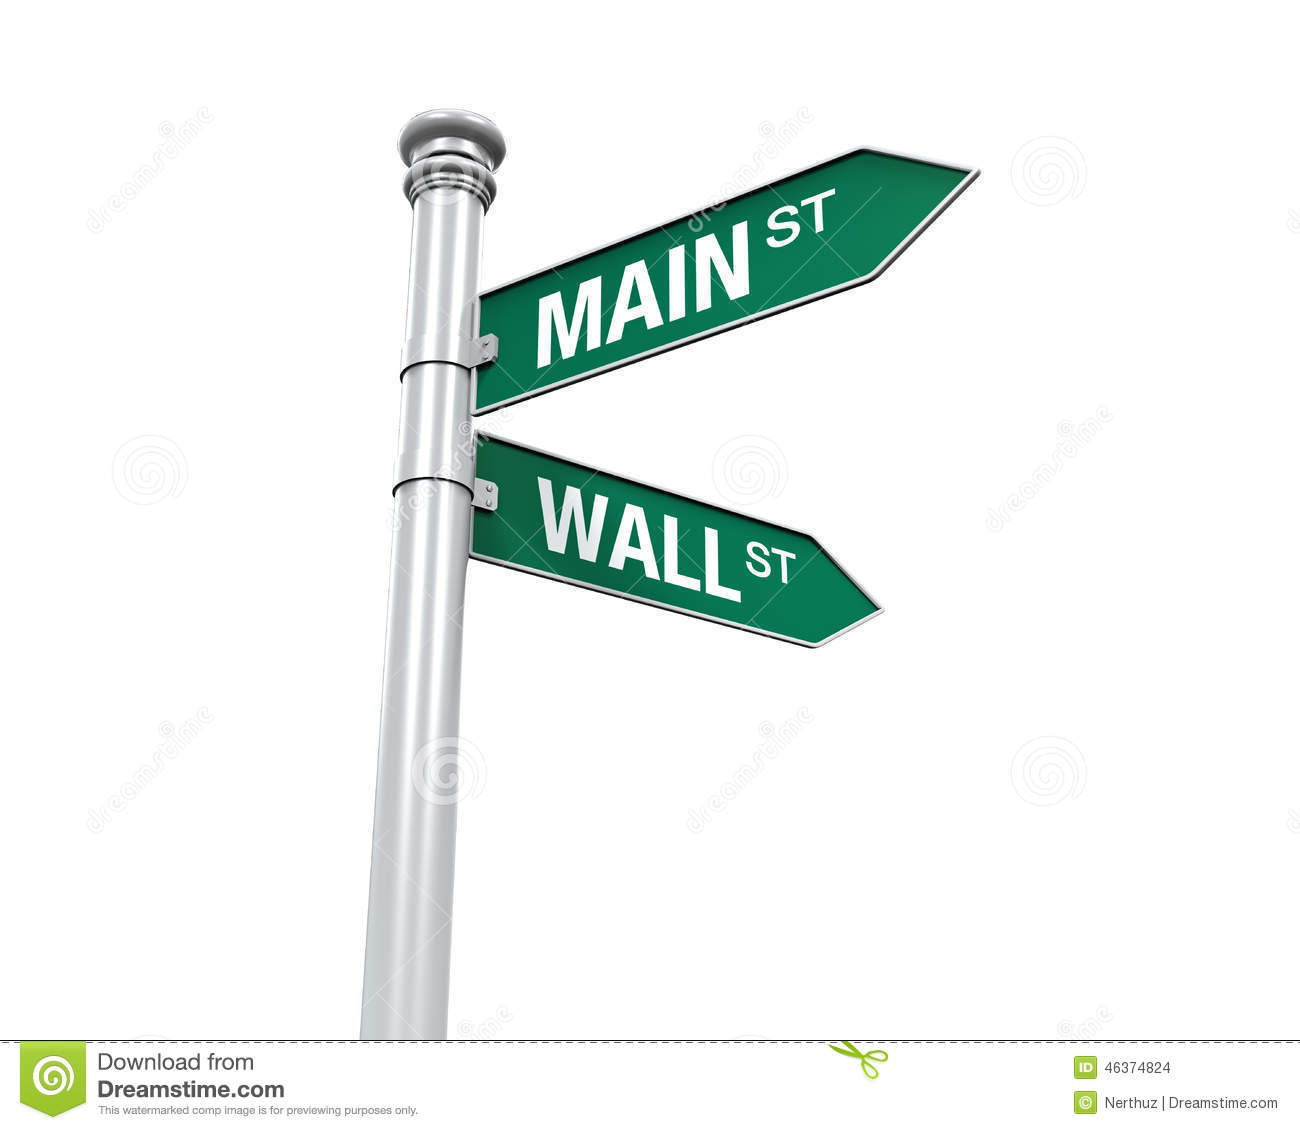 Gallery images and information: Main Street Sign Clip Art